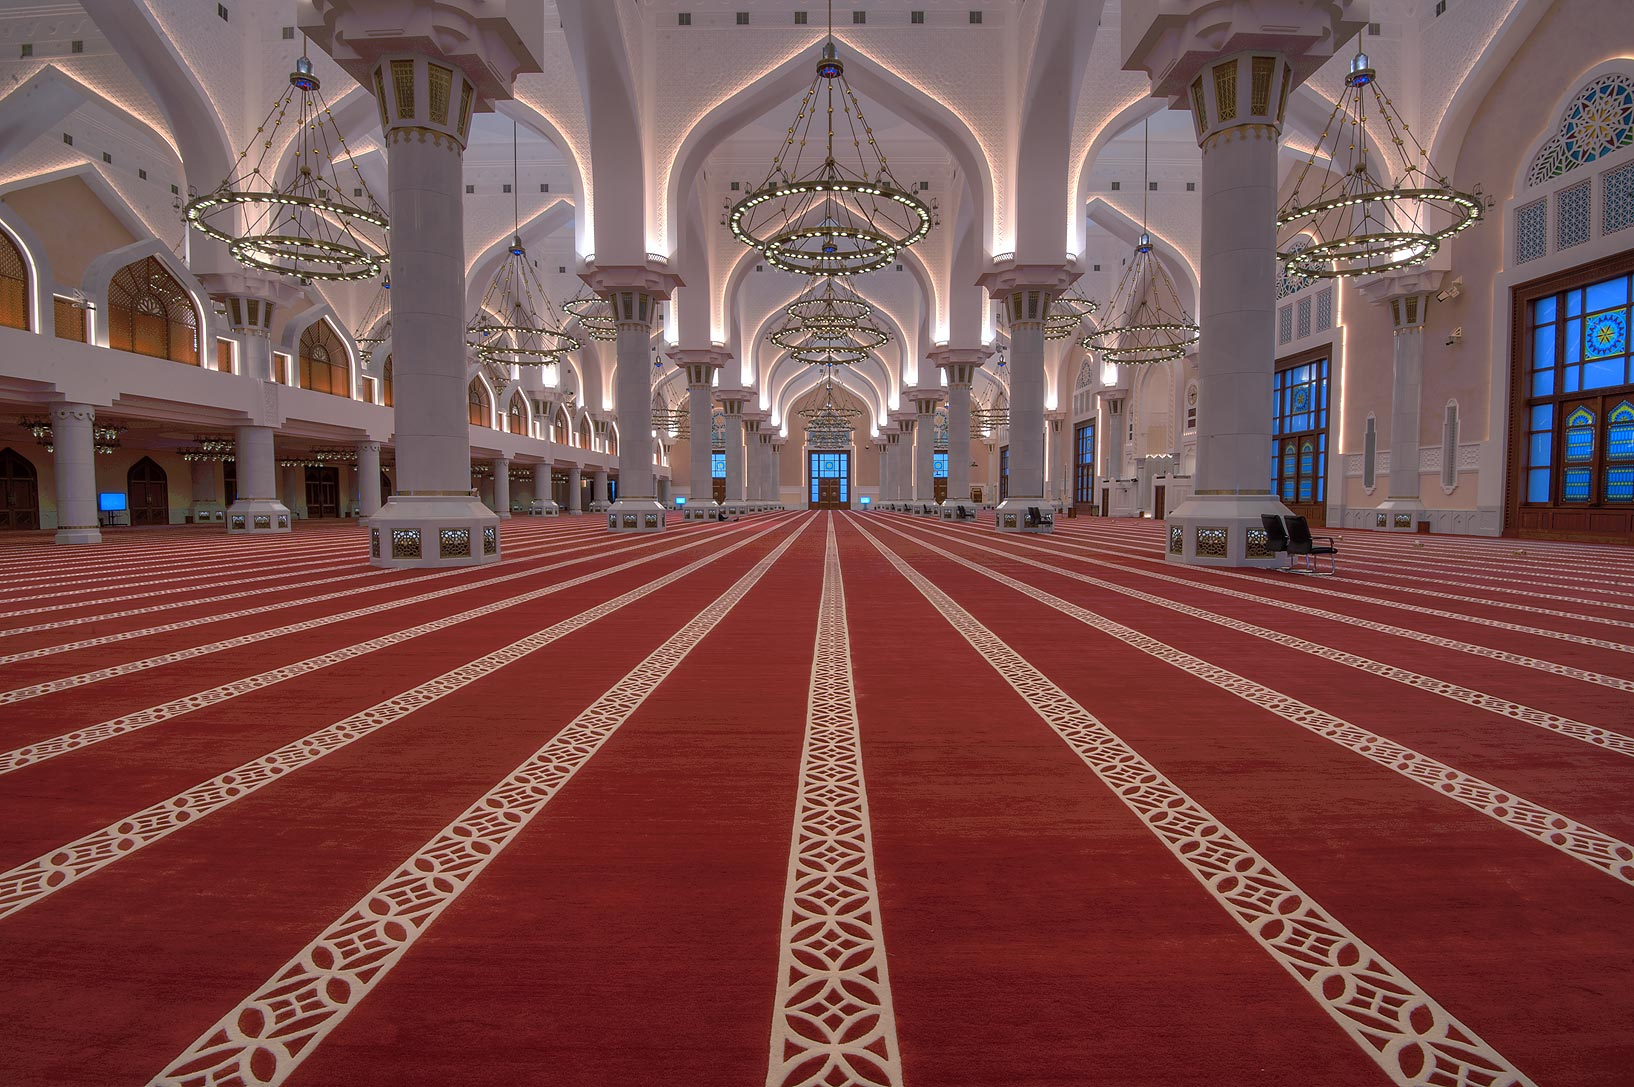 Red carpet of prayer hall of State Mosque (Sheikh...Wahhab Mosque) at morning. Doha, Qatar